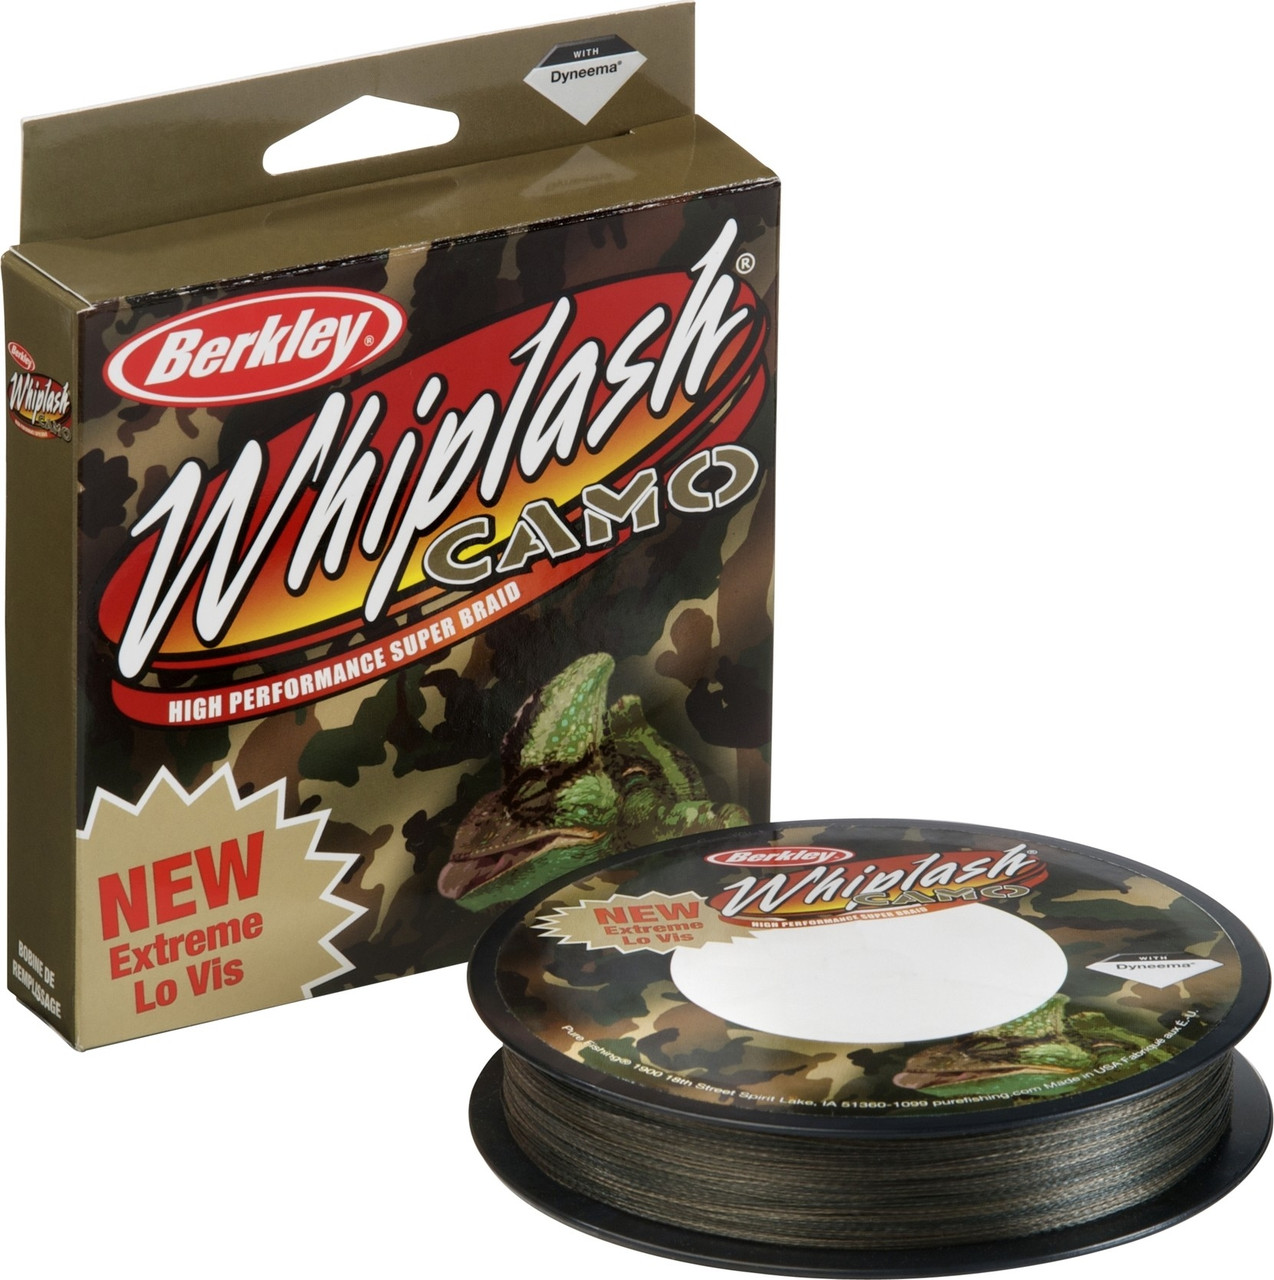 Шнур Berkley Whiplash Camo 110 м, 0,1 мм, 14.1 кг (шт.)